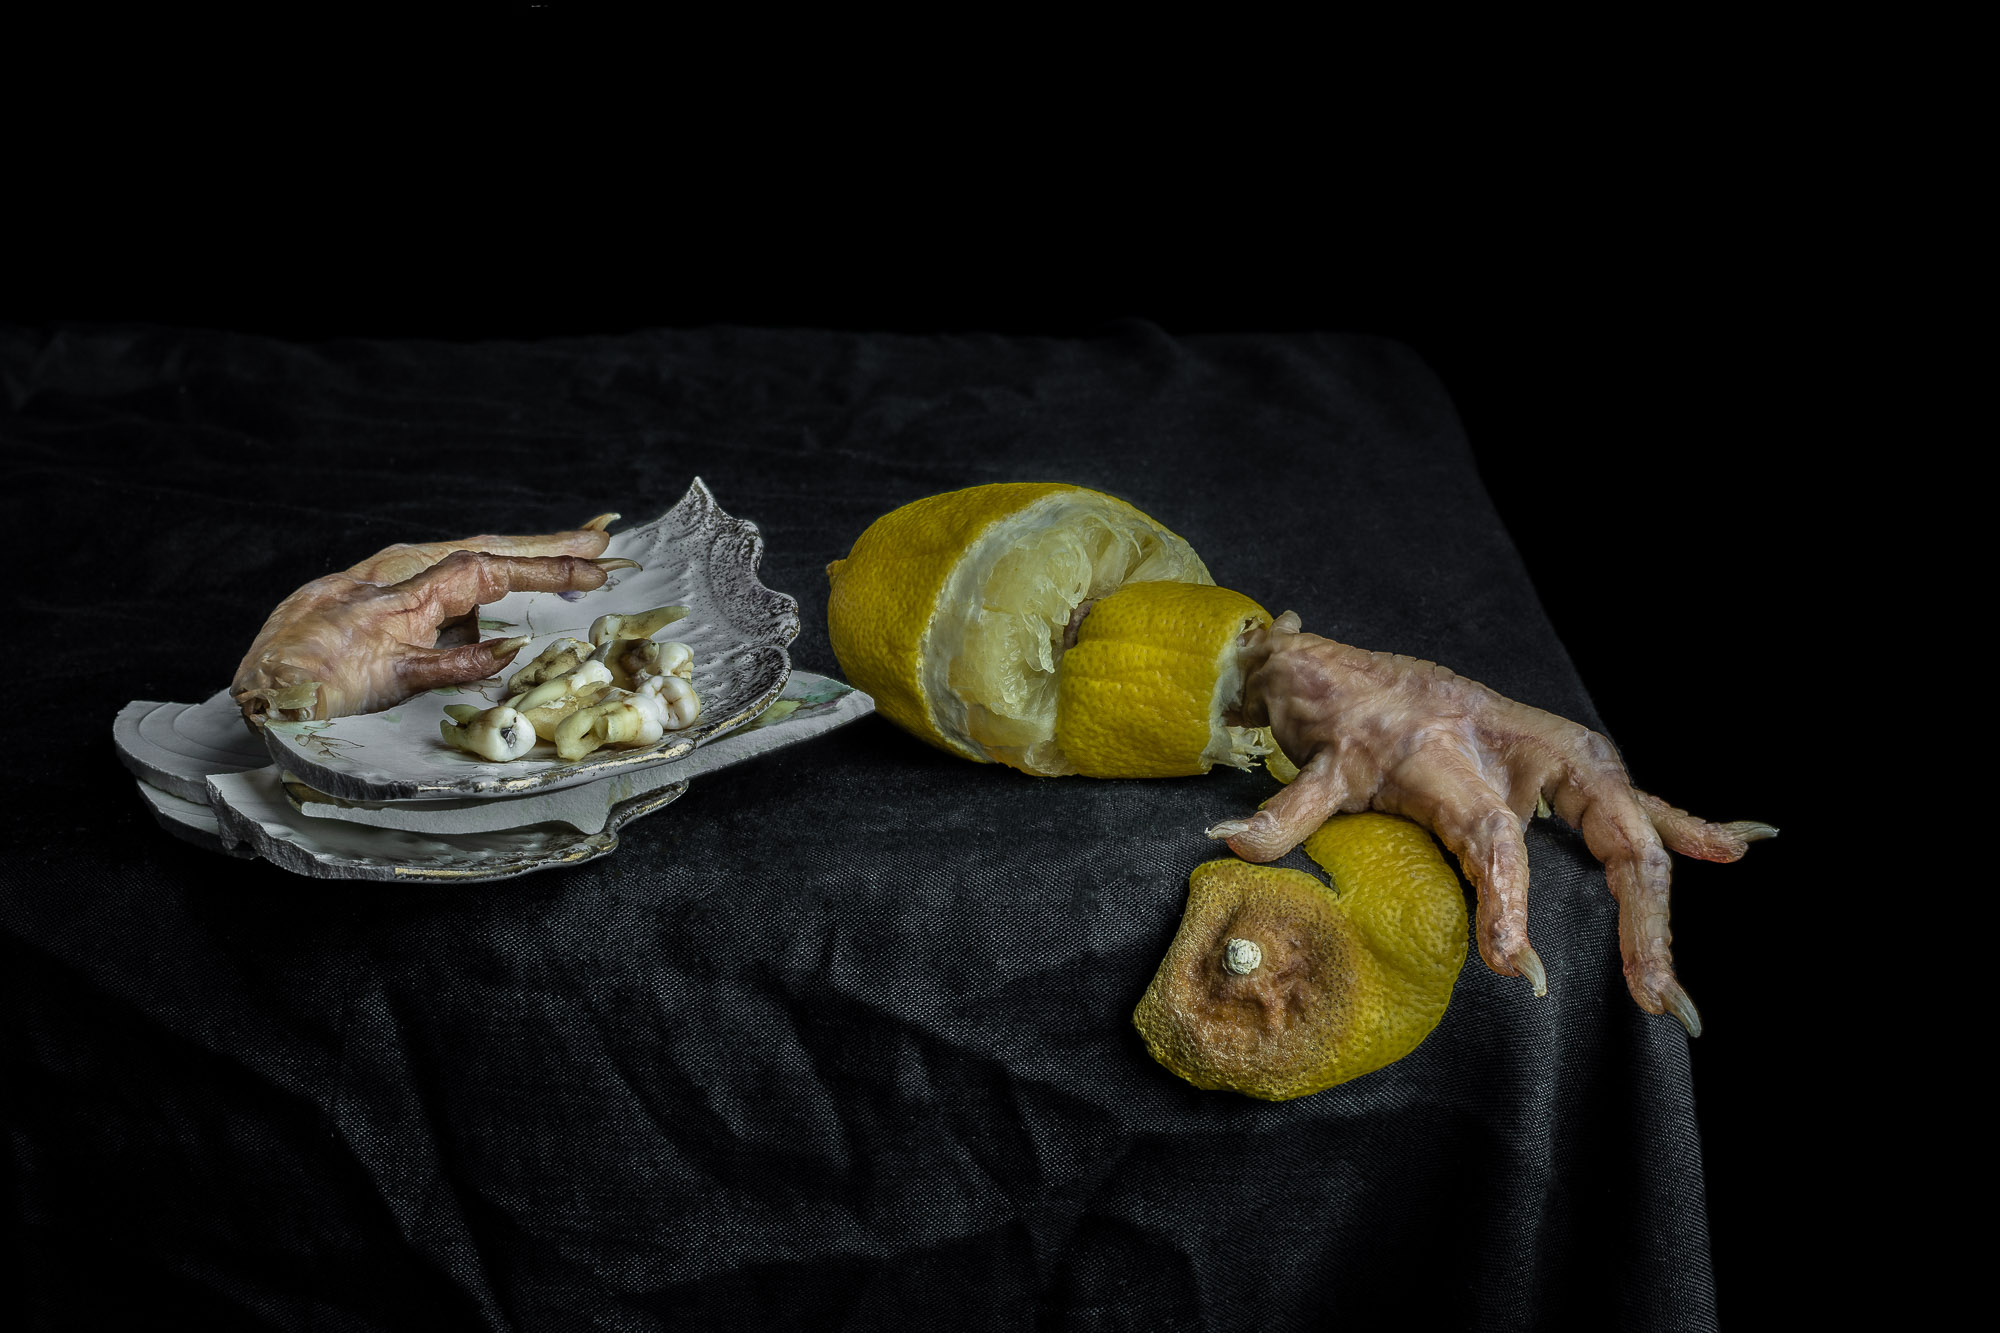 neal-auch-still-life-with-peeled-lemon-create-3jpg.jpg